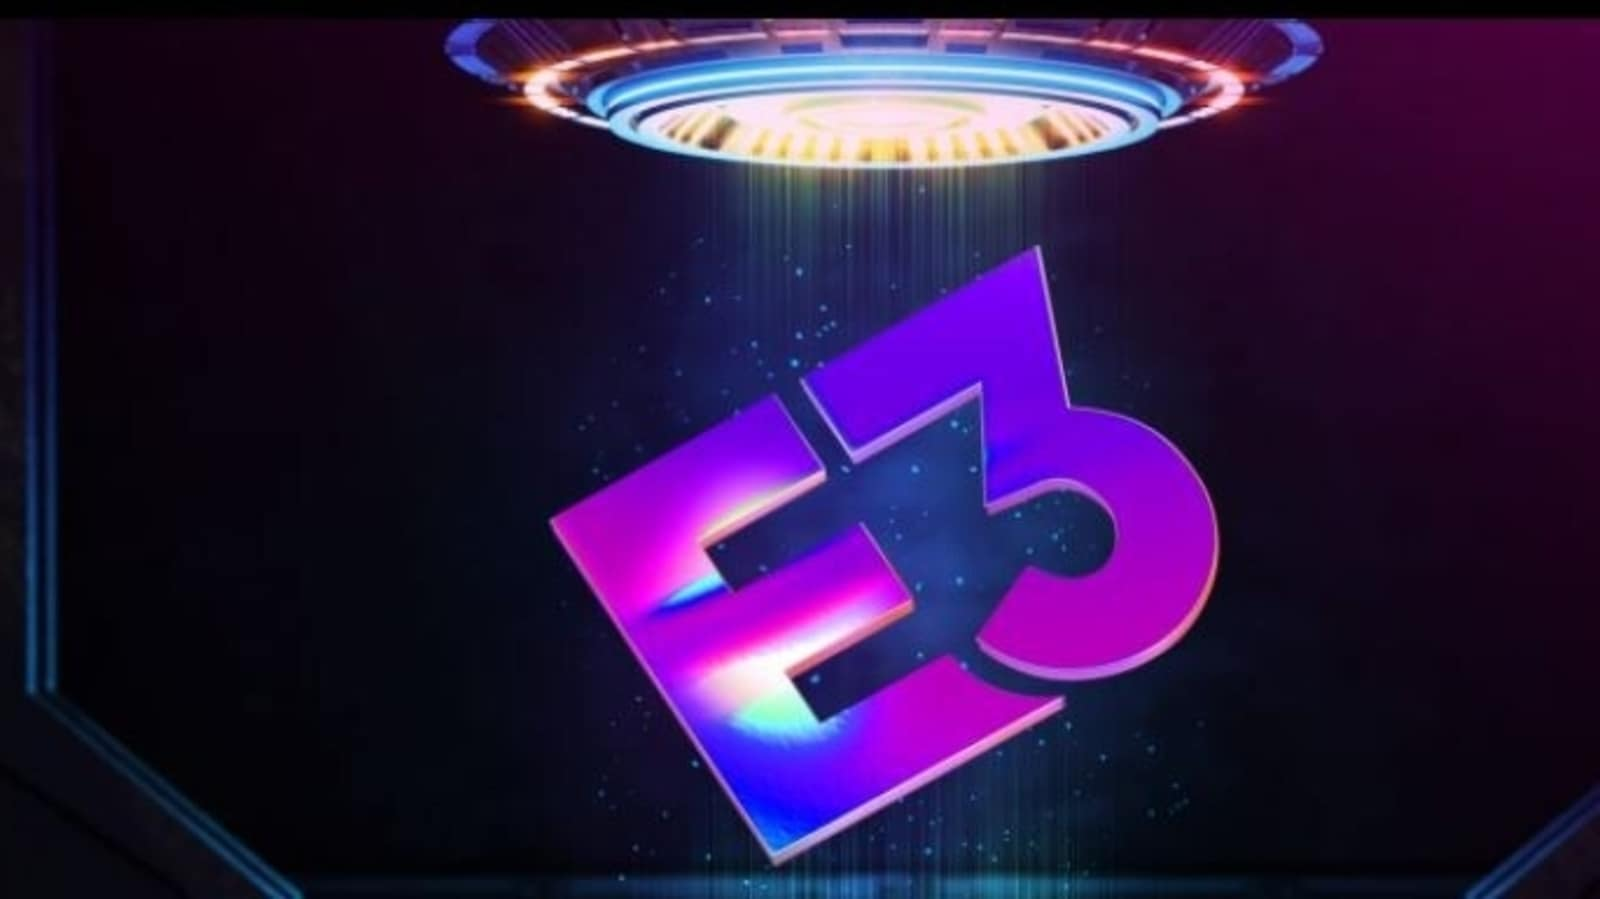 E3 2021 live play schedule: when and where to watch without a gaming event and what to expect